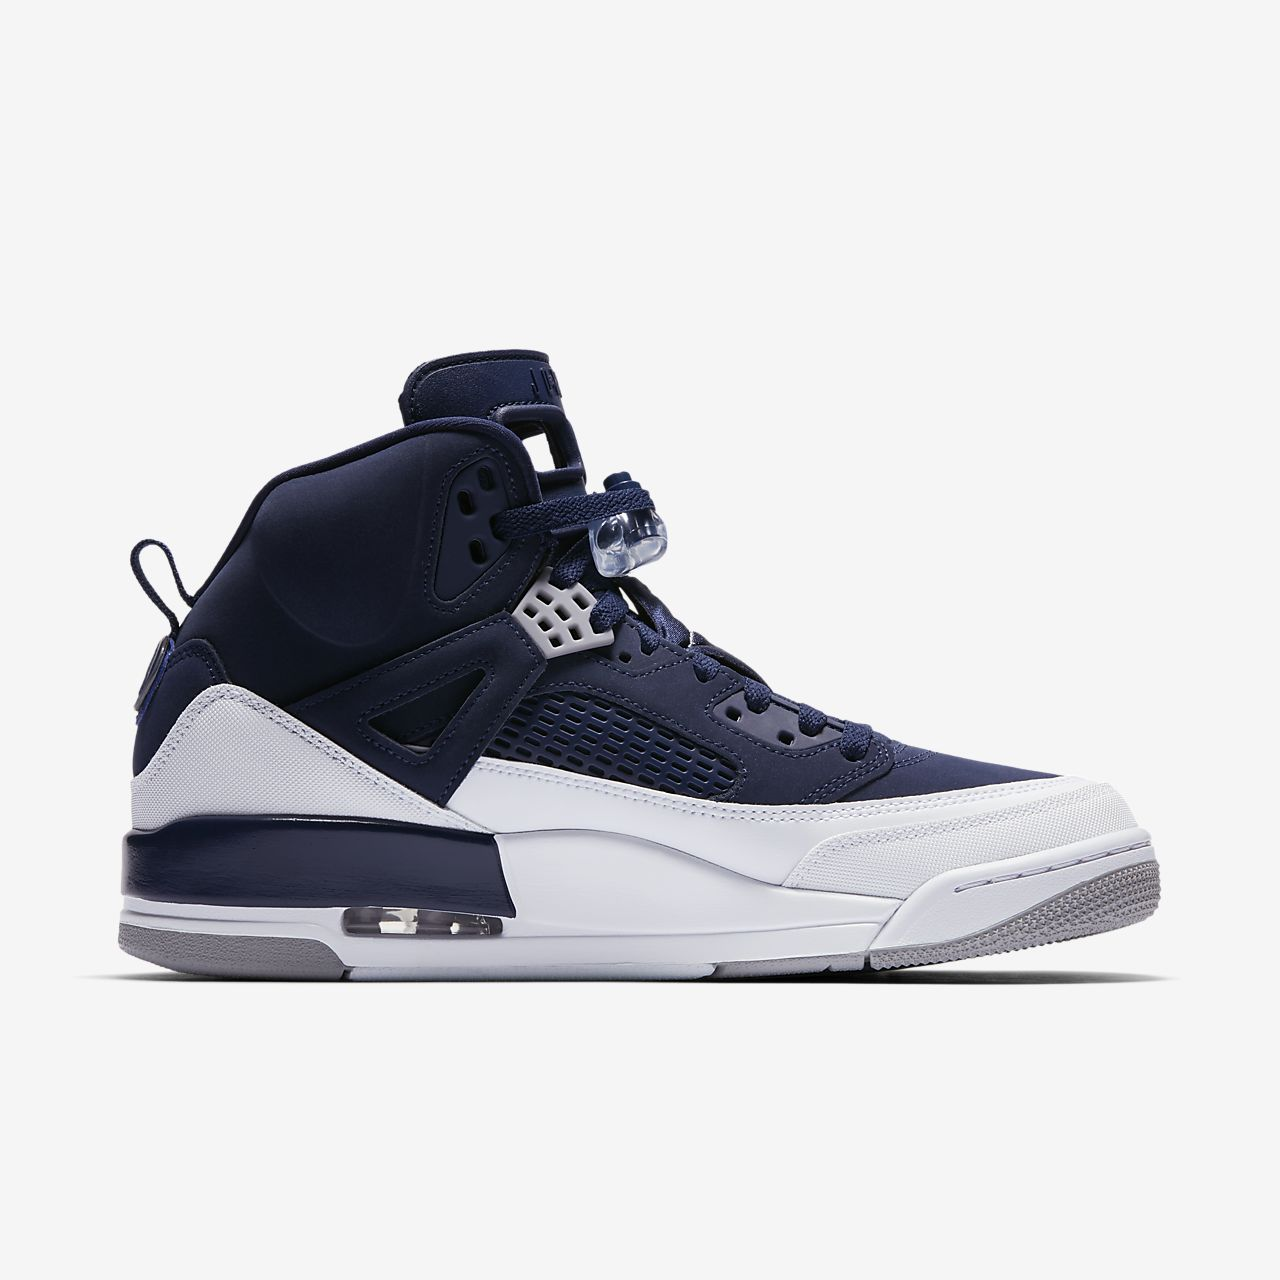 Low Resolution Jordan Spizike Men's Shoe Jordan Spizike Men's Shoe